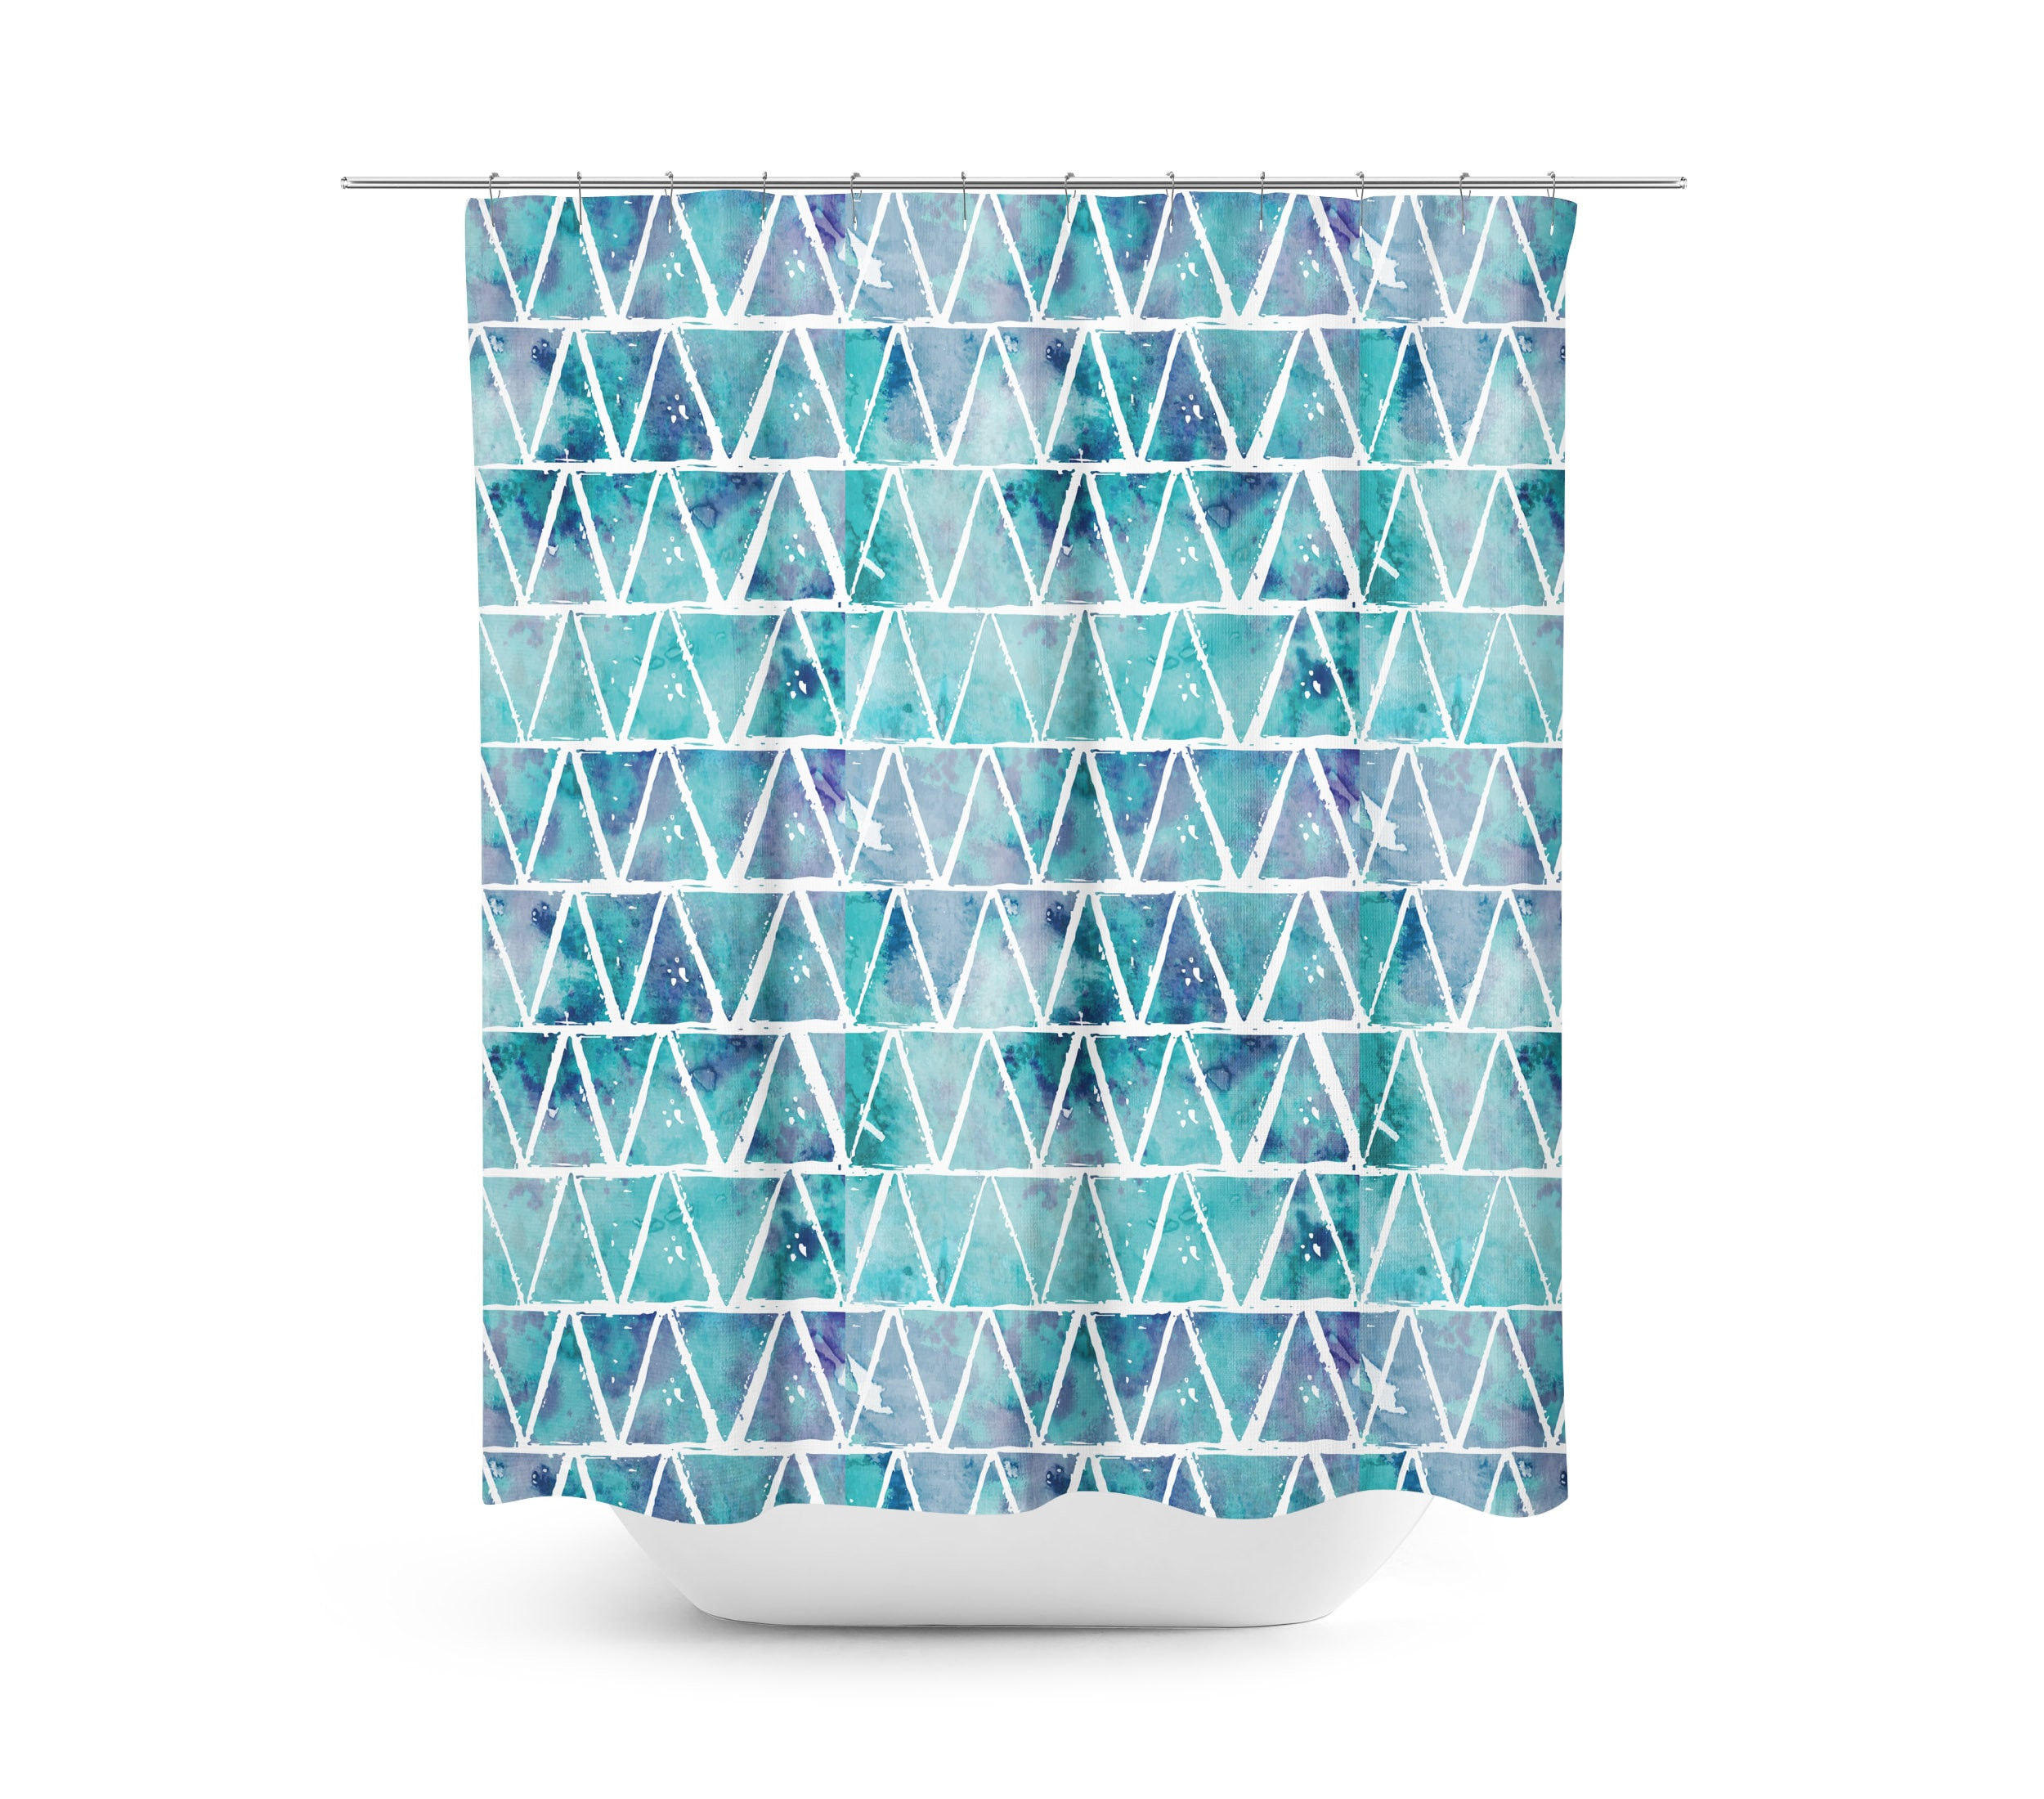 Shower Curtain Blue Watercolor Art 71x74 Triangles Geometric Beach Decor Boho Bathroom